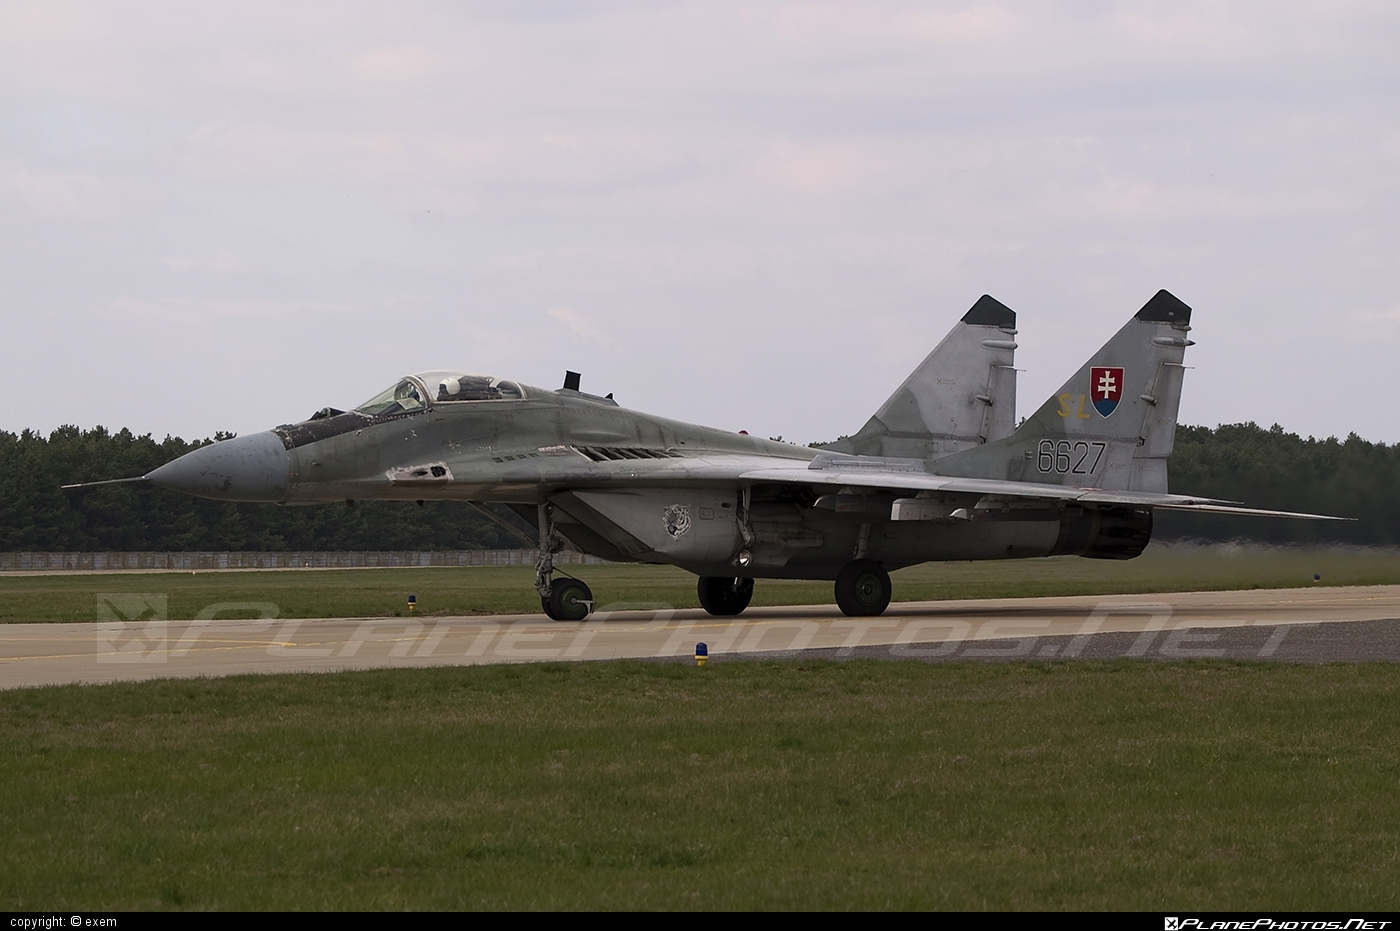 Mikoyan-Gurevich MiG-29AS - 6627 operated by Vzdušné sily OS SR (Slovak Air Force) #mig #mig29 #mig29as #mikoyangurevich #slovakairforce #vzdusnesilyossr